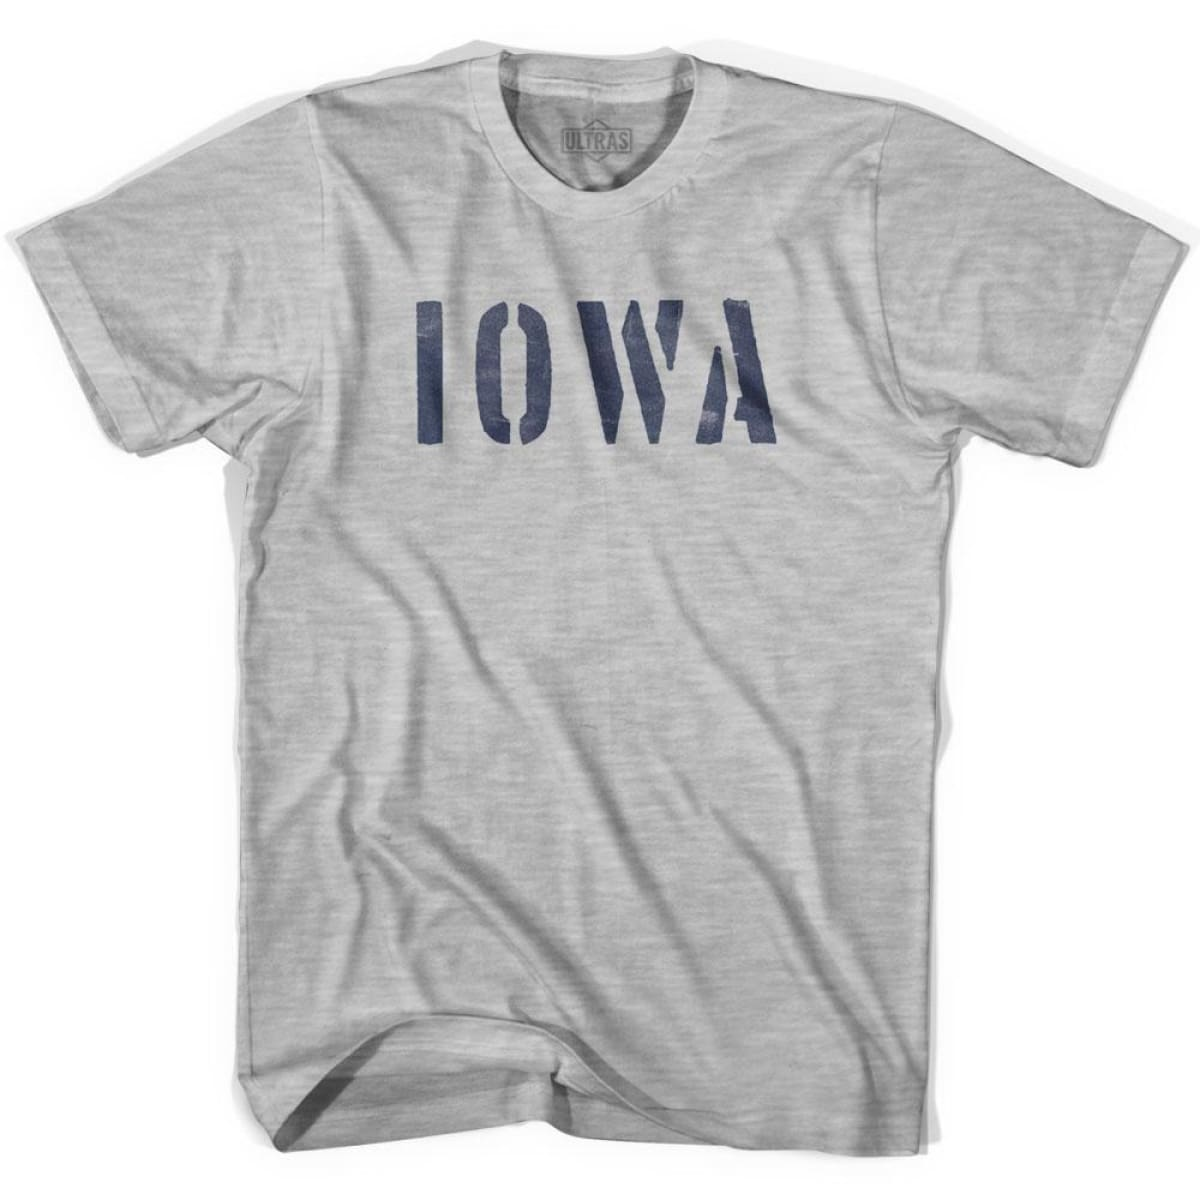 Iowa State Stencil Adult Cotton T-shirt - Grey Heather / Adult Small - Stencil State